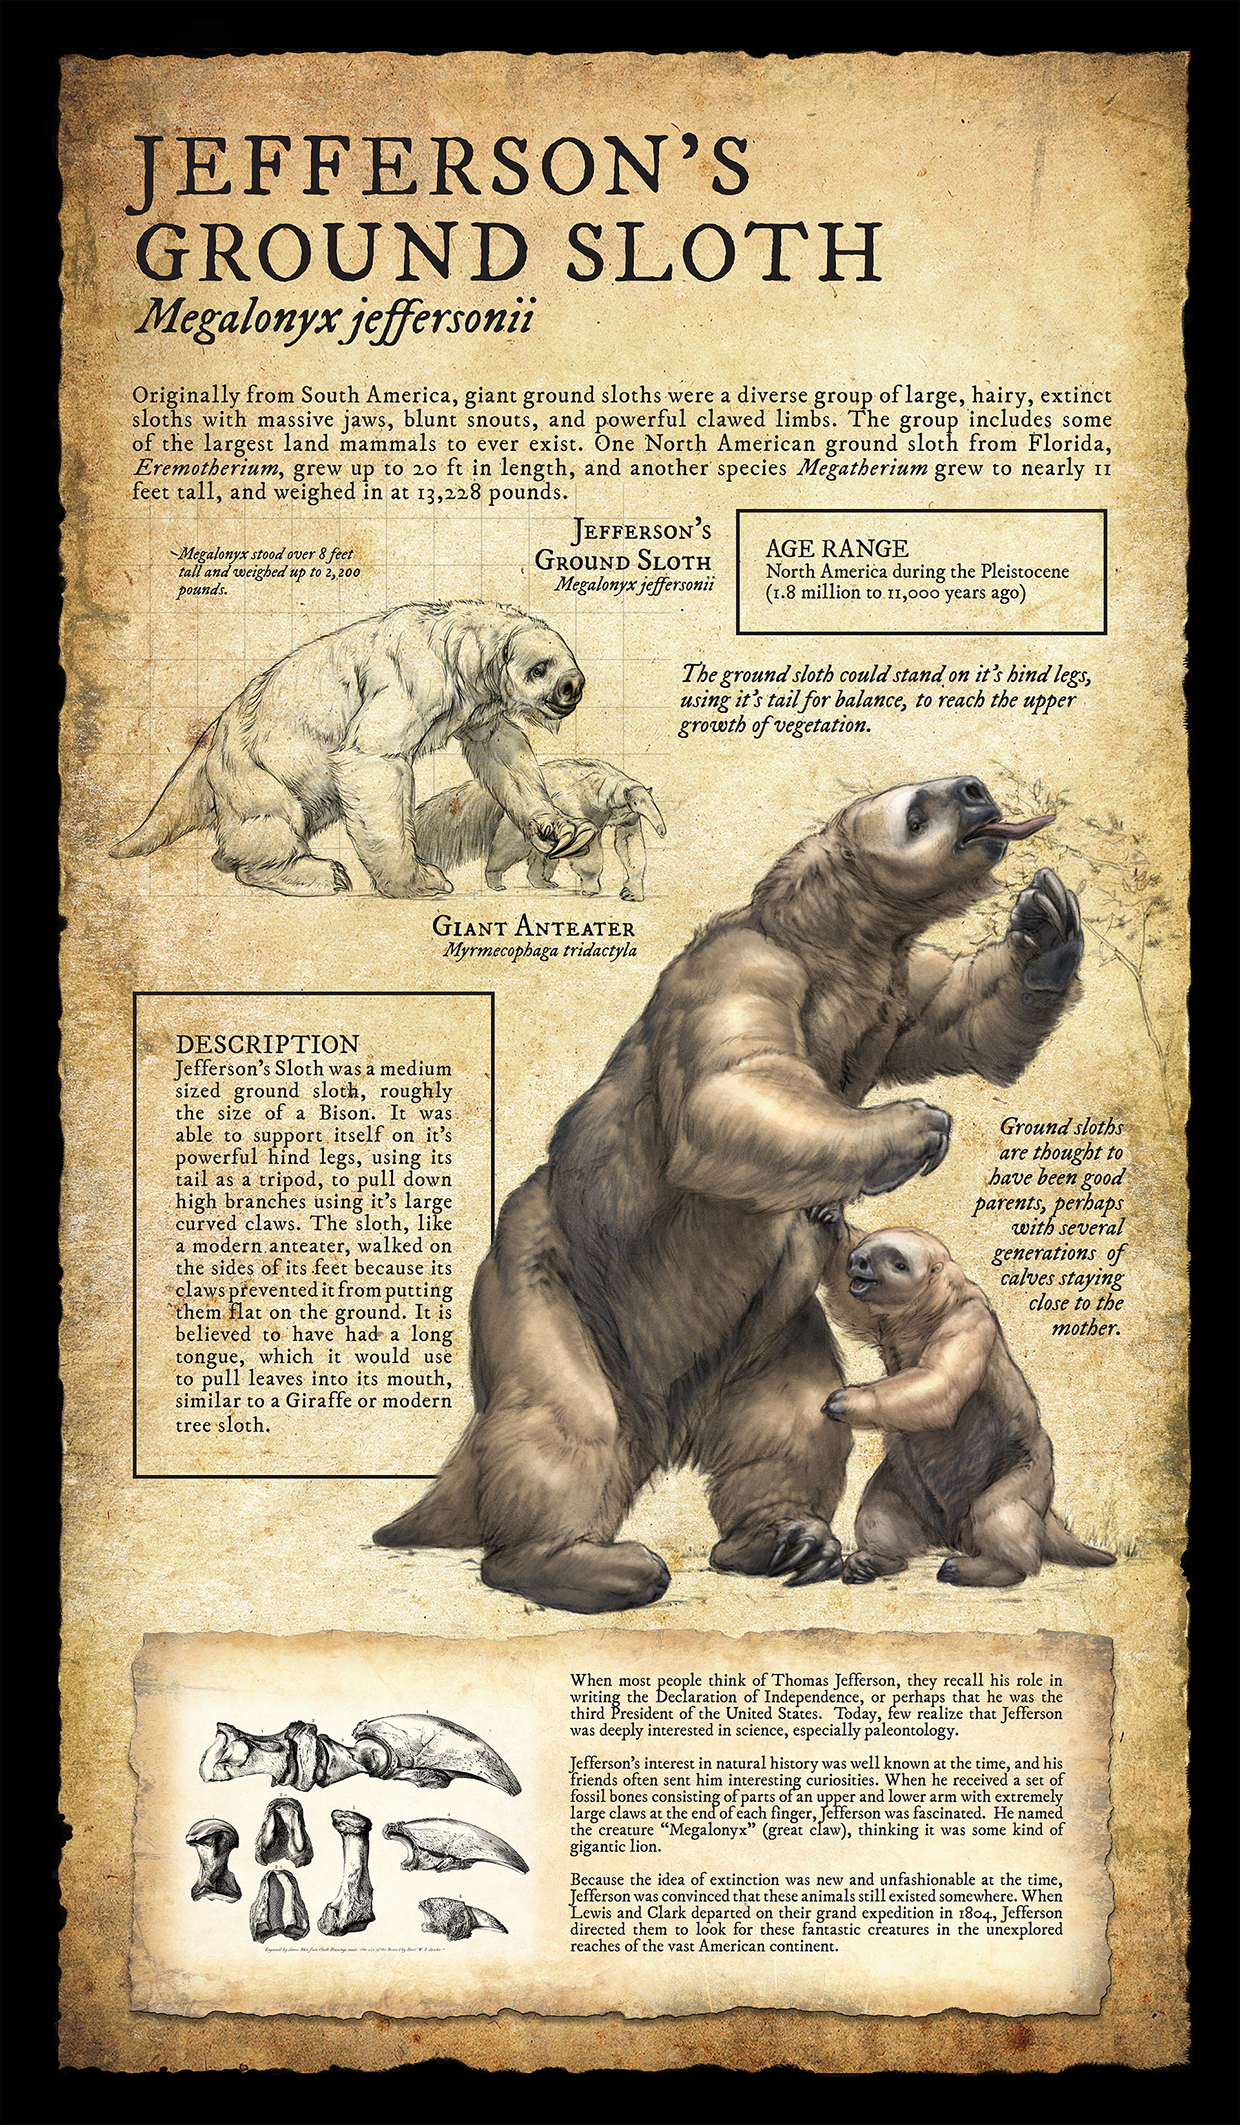 jefferson's ground sloth infographic